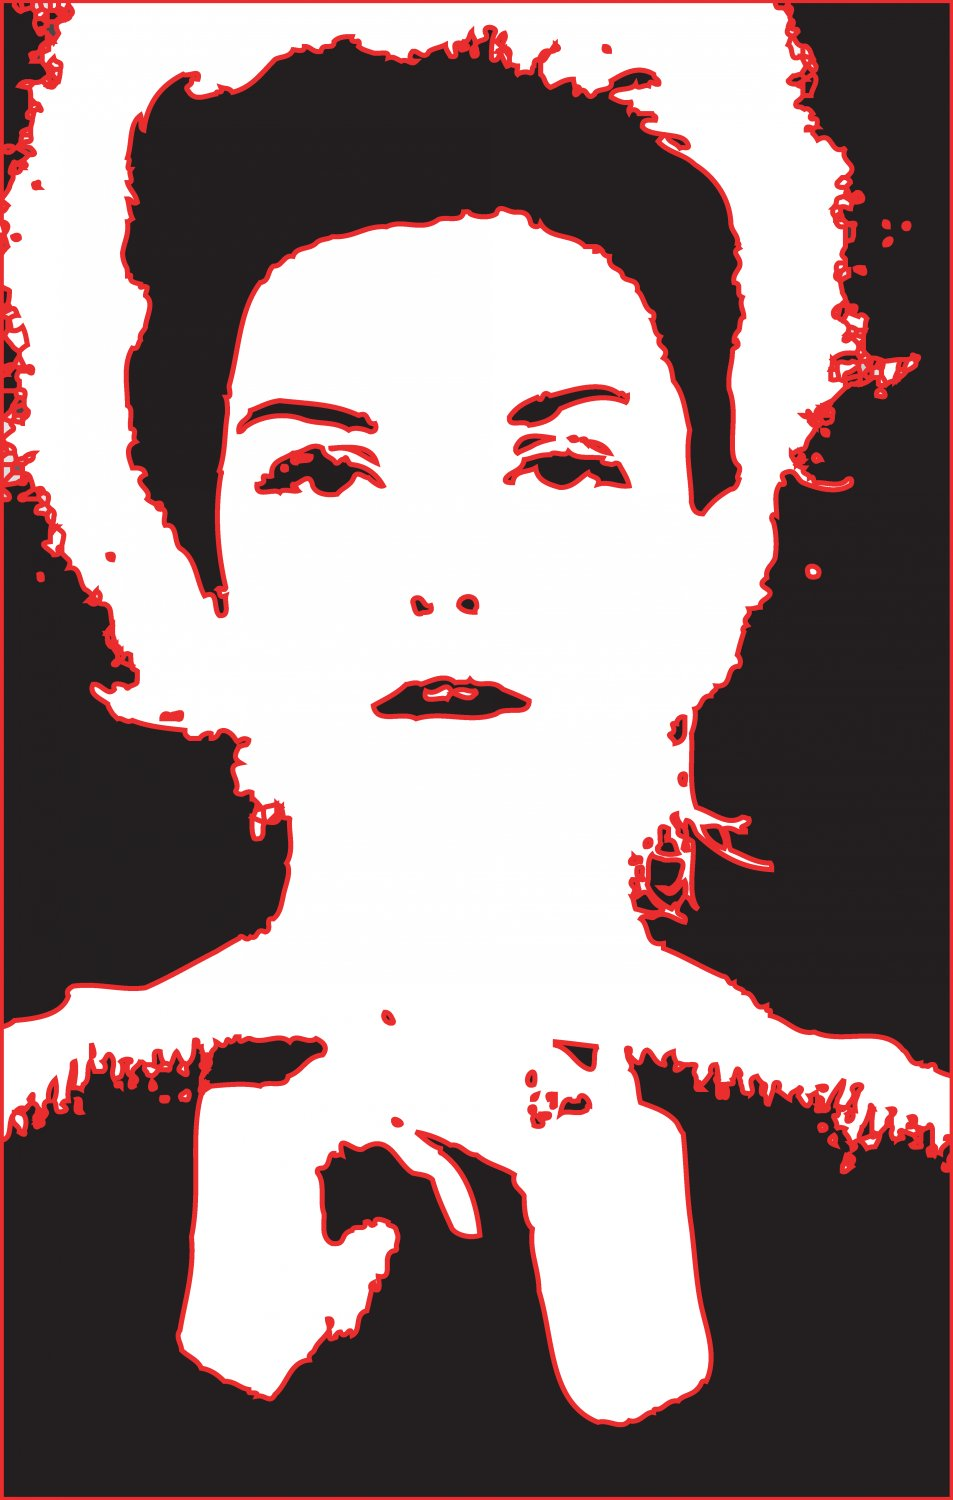 - Once in PostScript, I gave the shapes a nice red outline - A portrait of Donna Mitchell as a young model - 1962 - - art  - photography - by Tony Karp